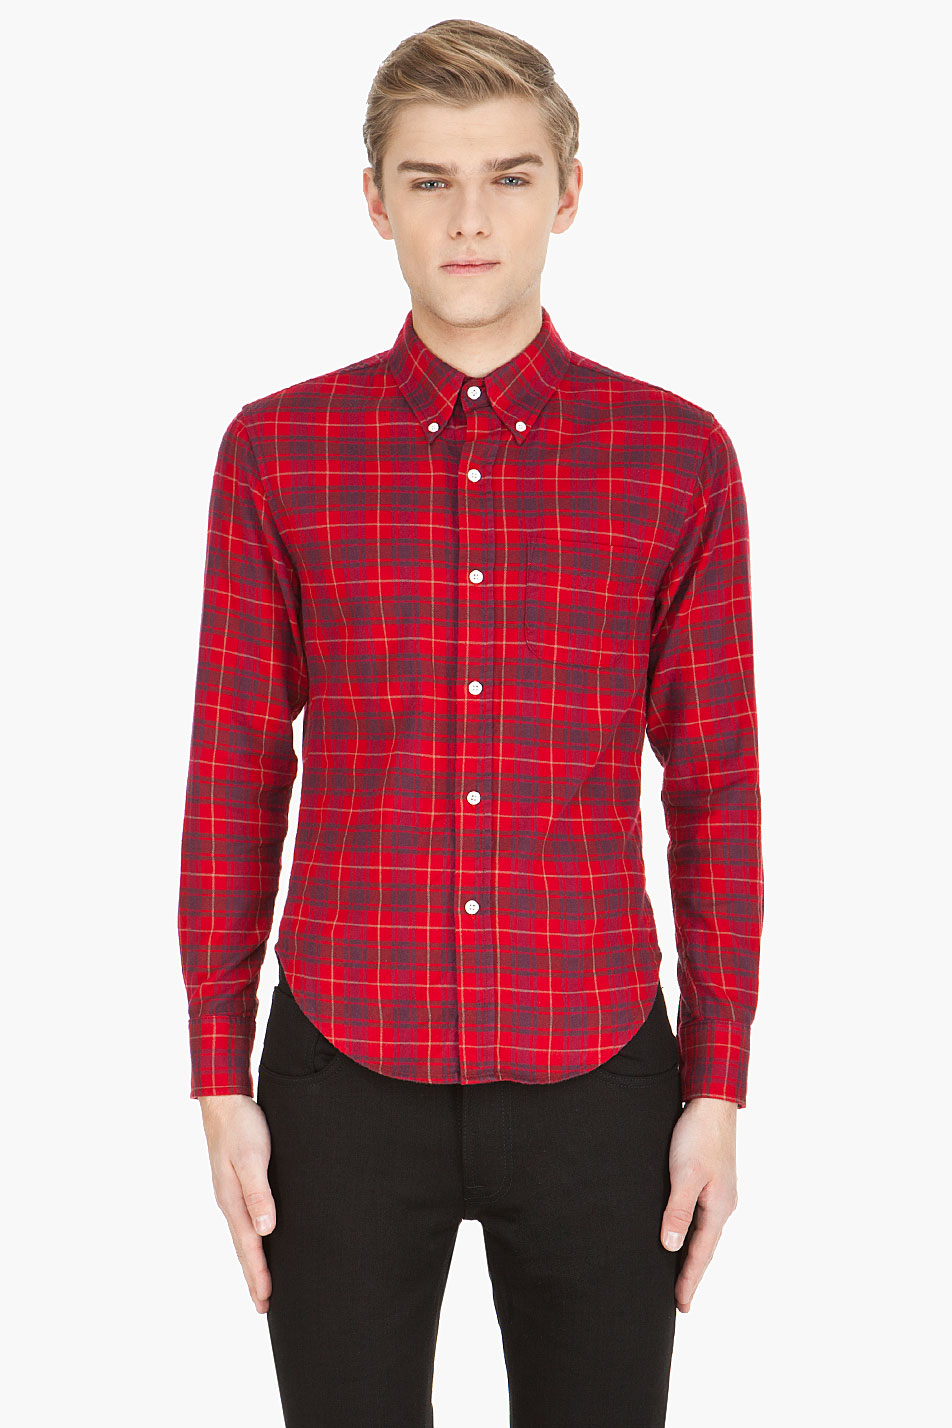 Band Of Outsiders Plaid Flannel Shirt In Red For Men Lyst